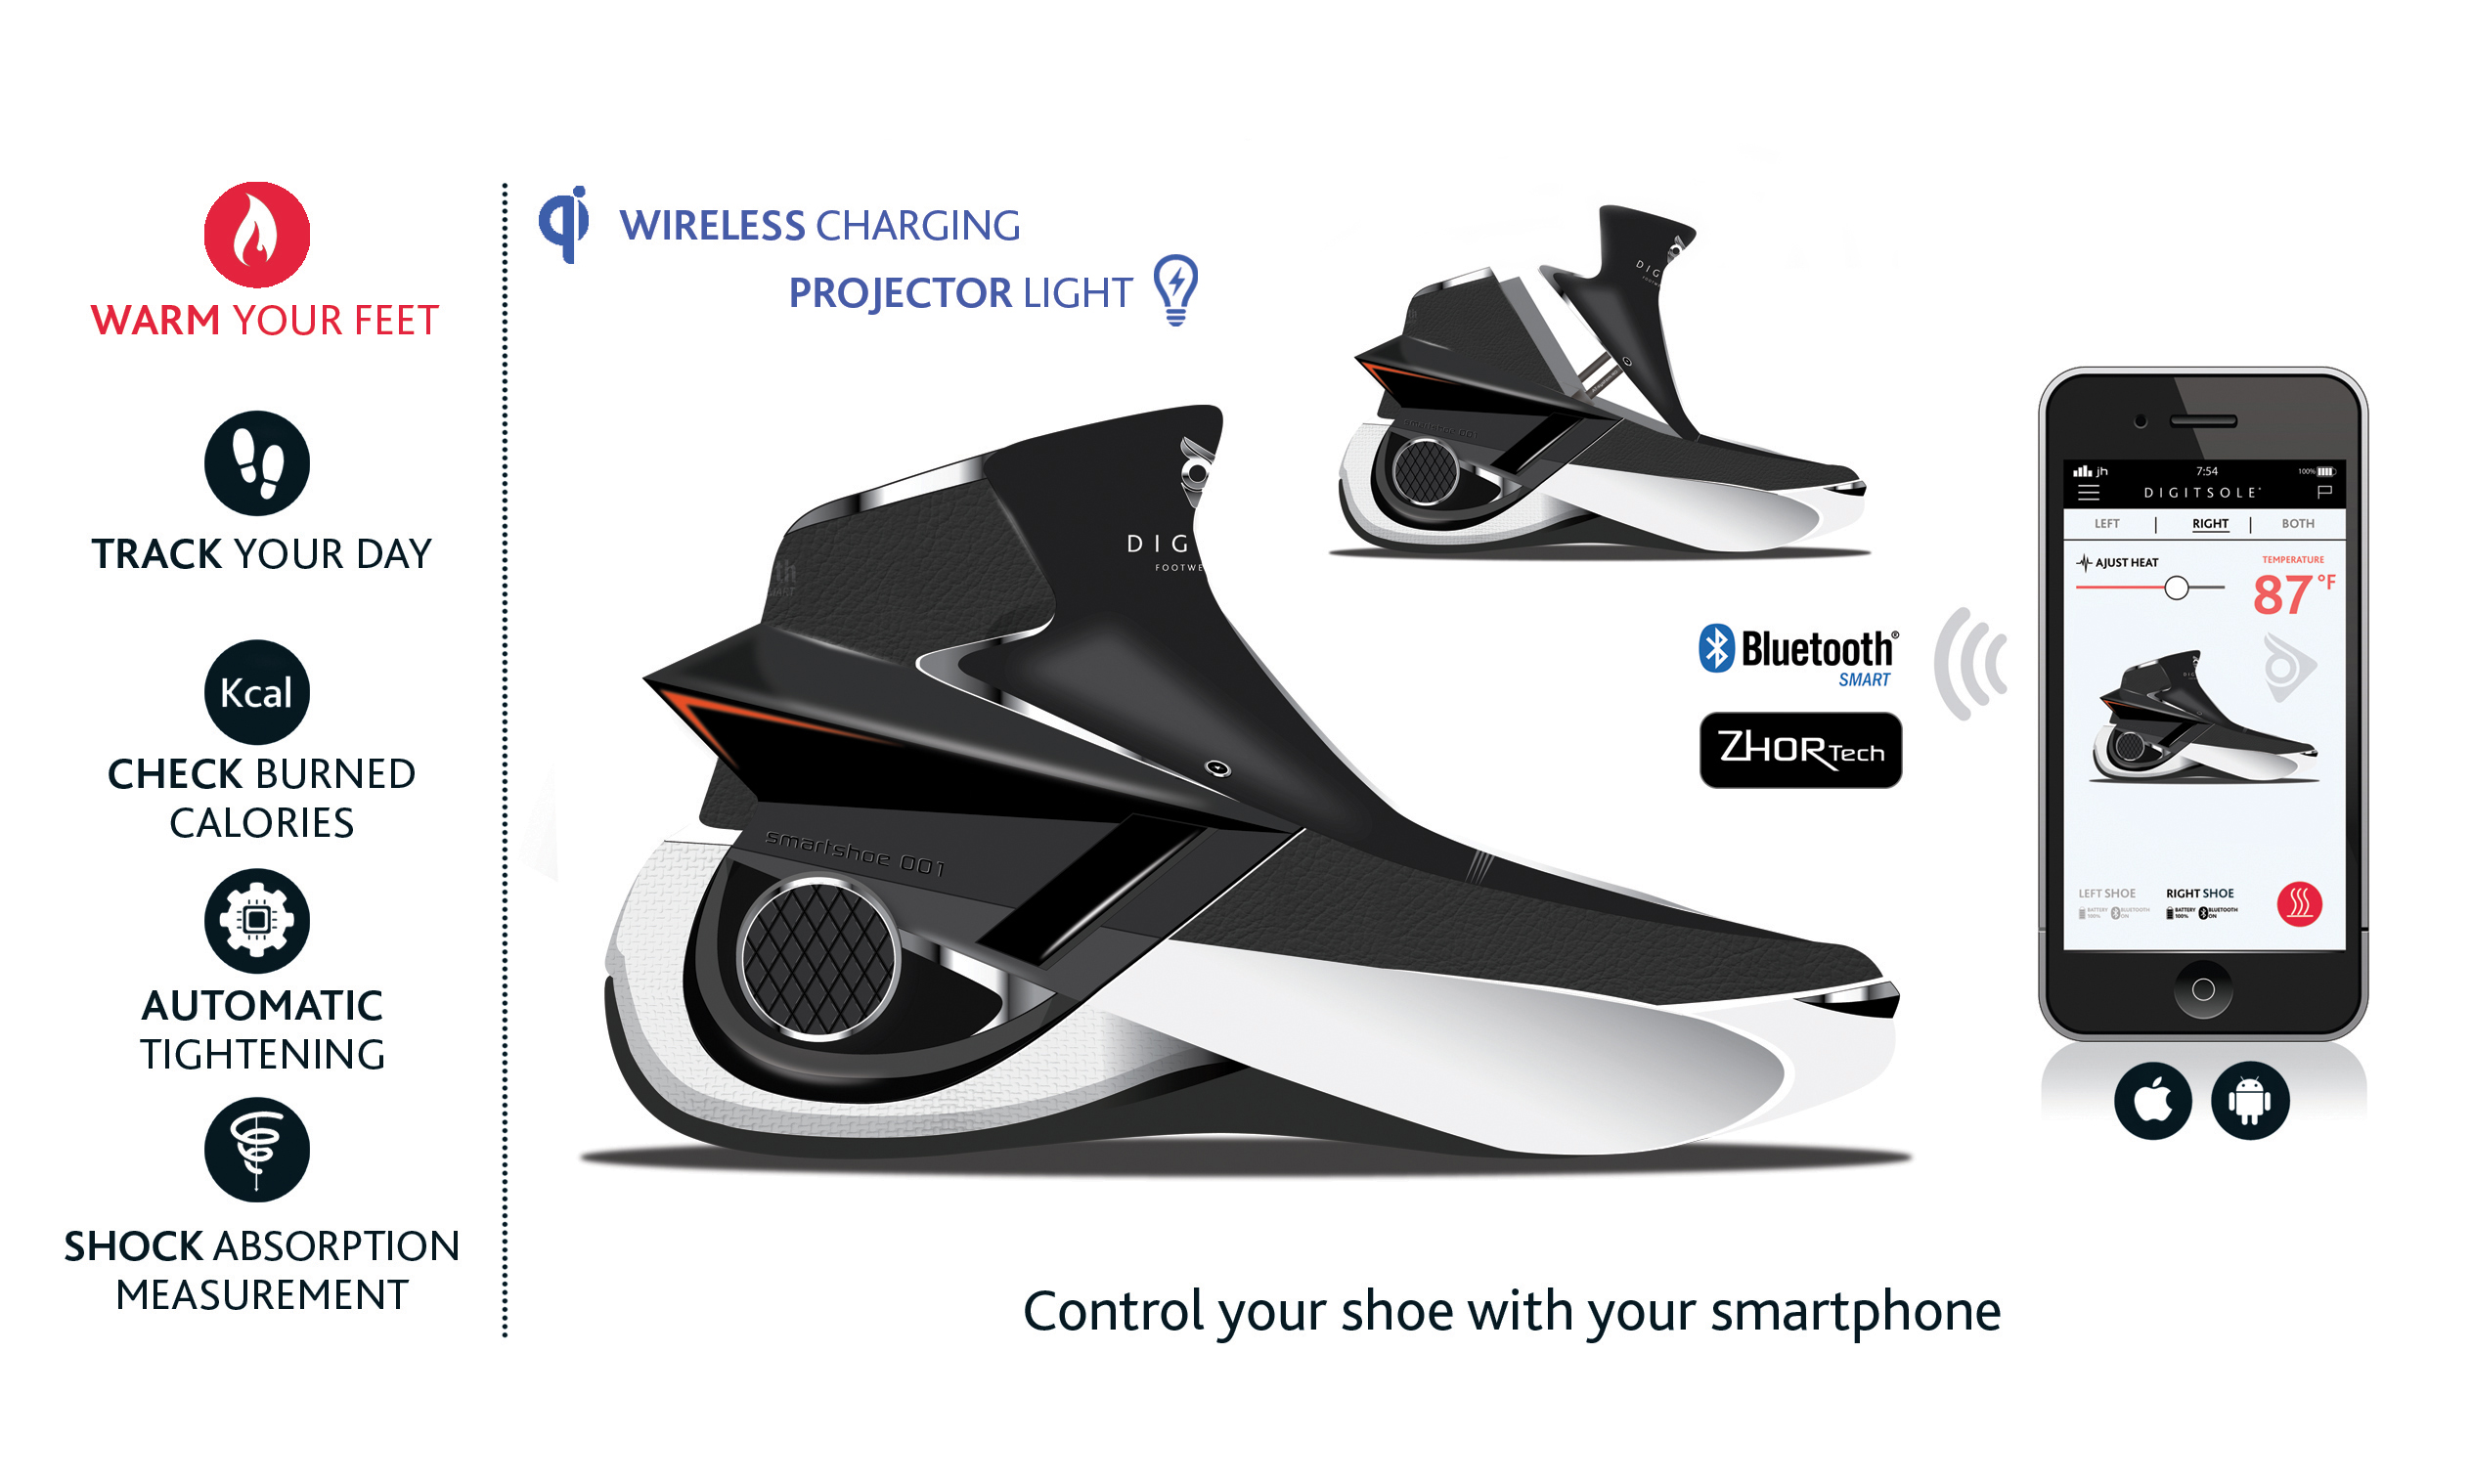 ideas for shoes in garage - Cool ideas from the Consumer Electronics Show Frontfoot